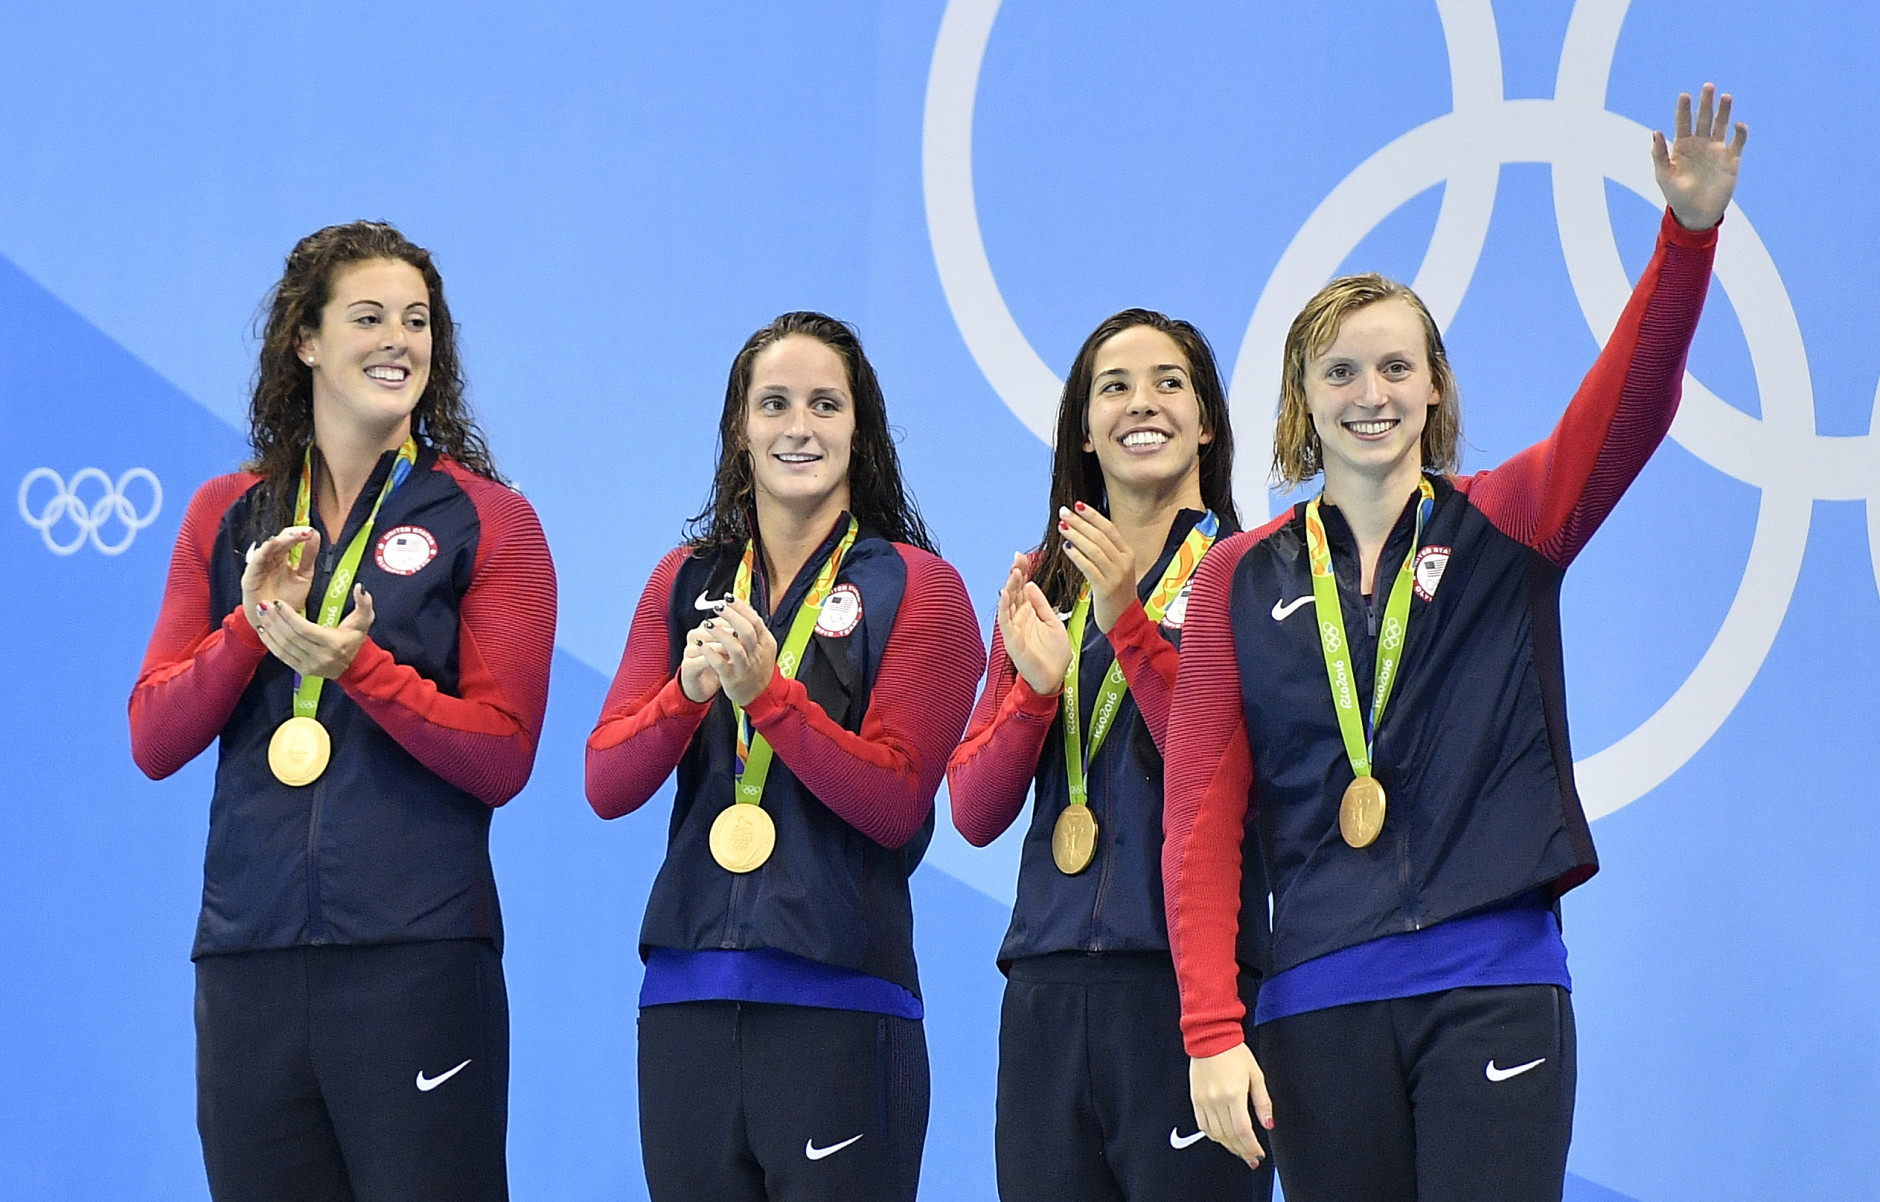 United States' Allison Schmitt, Leah Smith, Maya DiRado and Katie Ledecky, from left, celebrate their gold medals during the women's 4 x 200-meter freestyle relay medals ceremony at the swimming competitions at the 2016 Summer Olympics, Thursday, Aug. 11, 2016, in Rio de Janeiro, Brazil. (AP Photo/Martin Meissner)